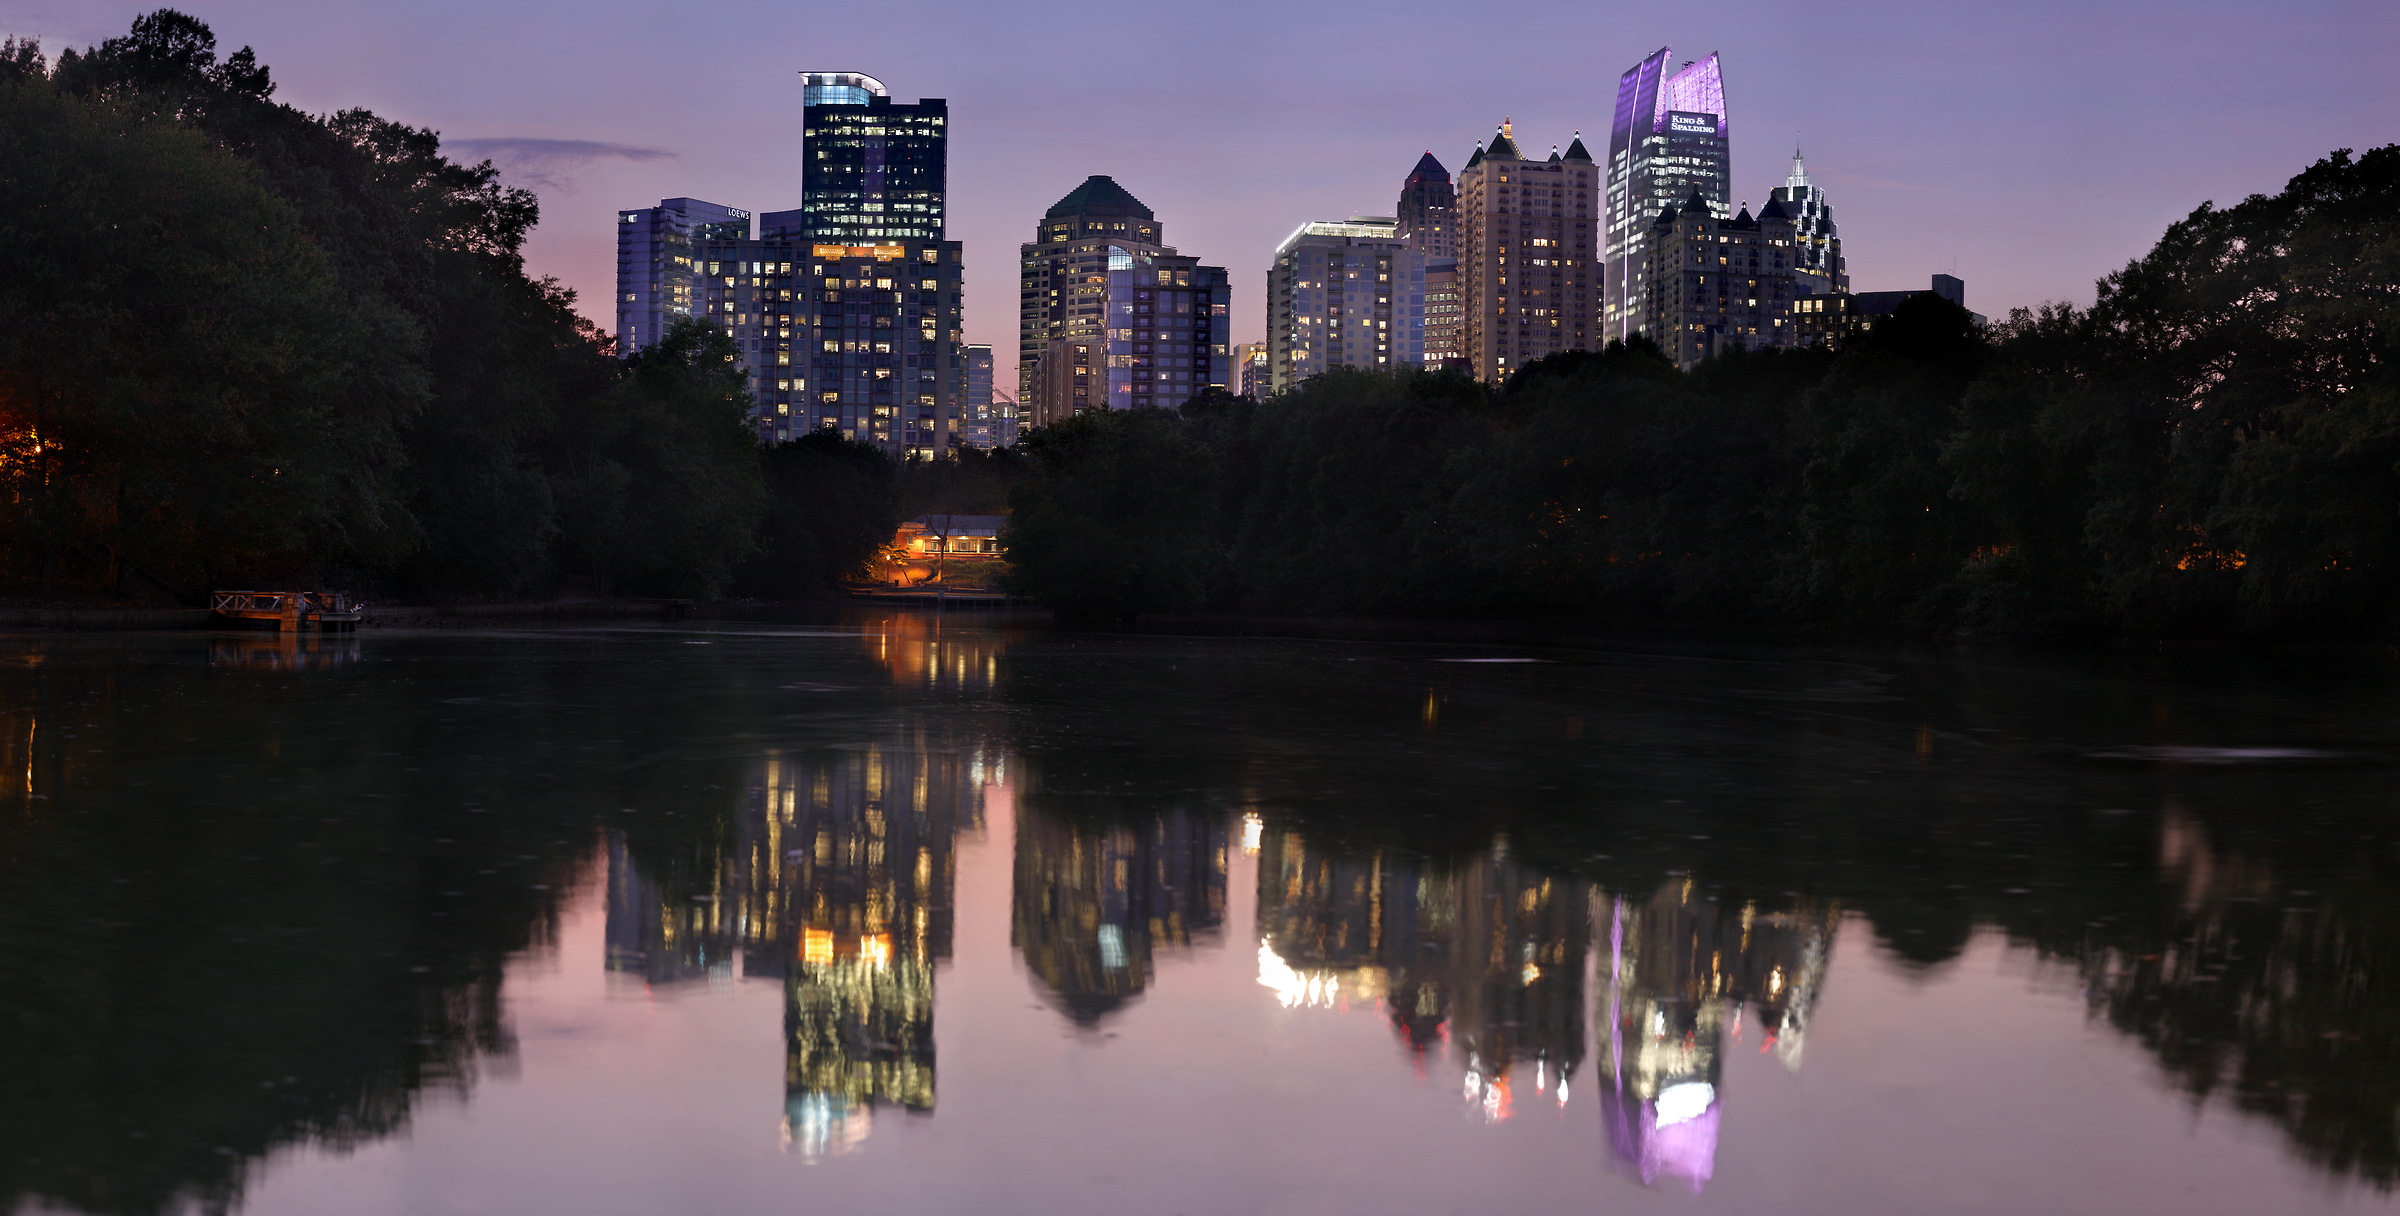 862 megapixels! A very high resolution, large-format VAST photo print of the Atlanta skyline and Piedmont Park at night; photograph created by Phil Crawshay in Piedmont Park, Atlanta, Georgia